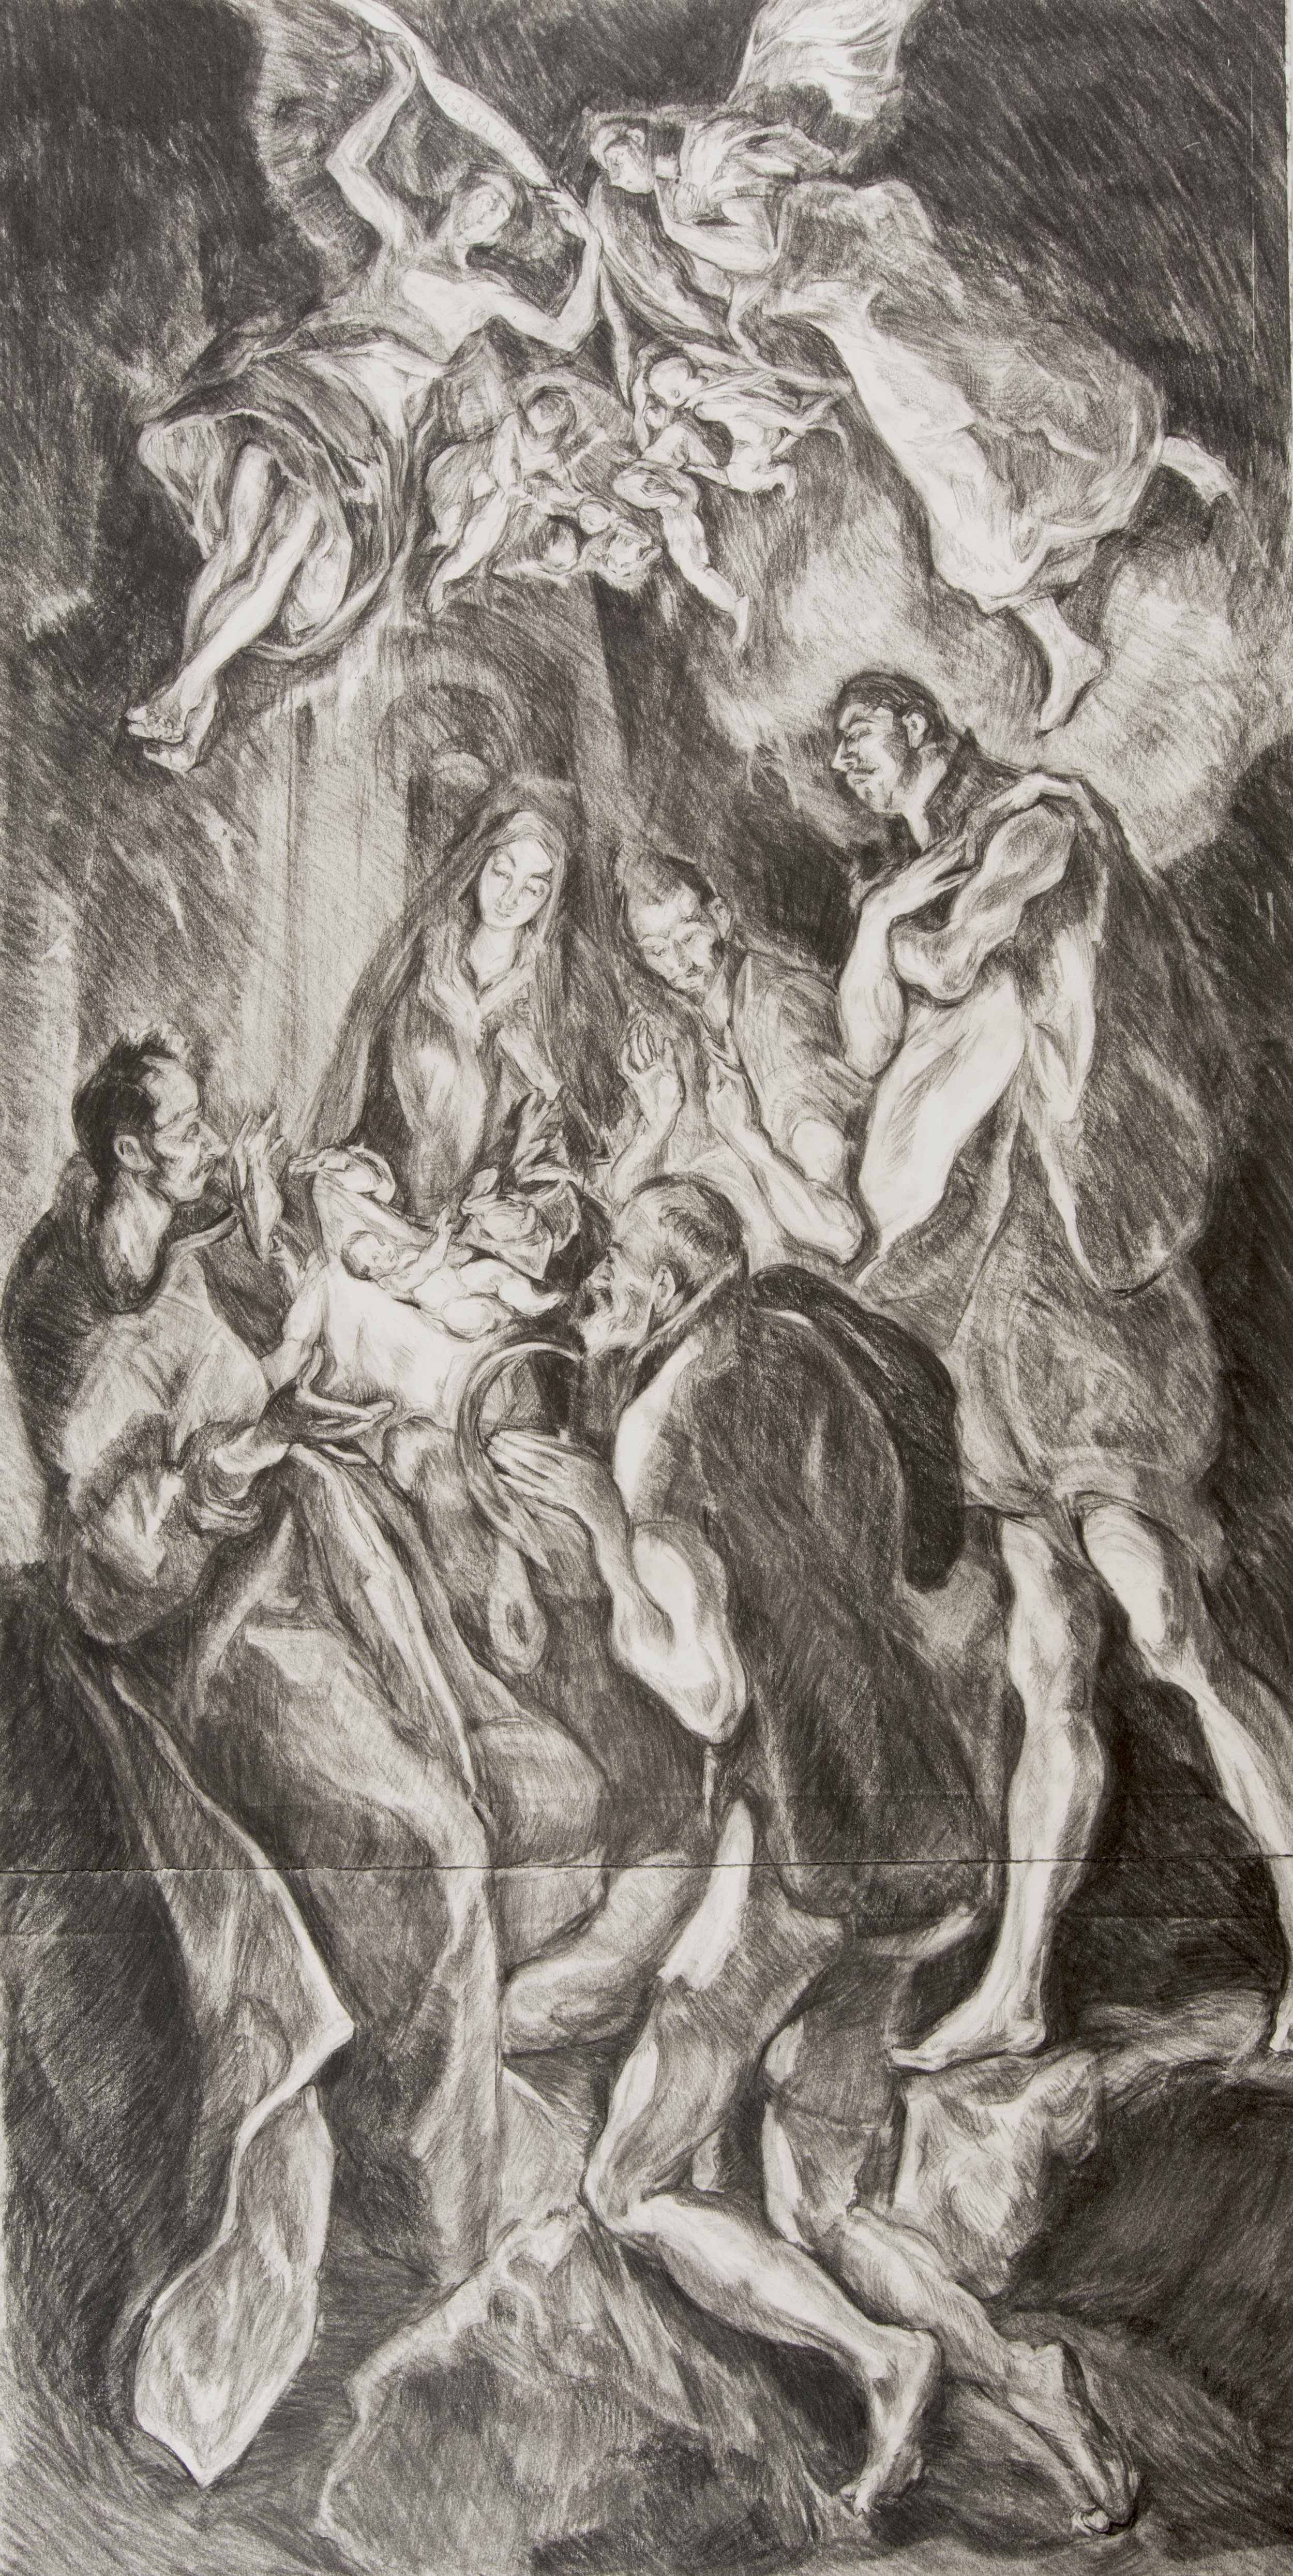 After El Greco 'The Adoration of the Shepherds' (1614)  charcoal drawing on paper